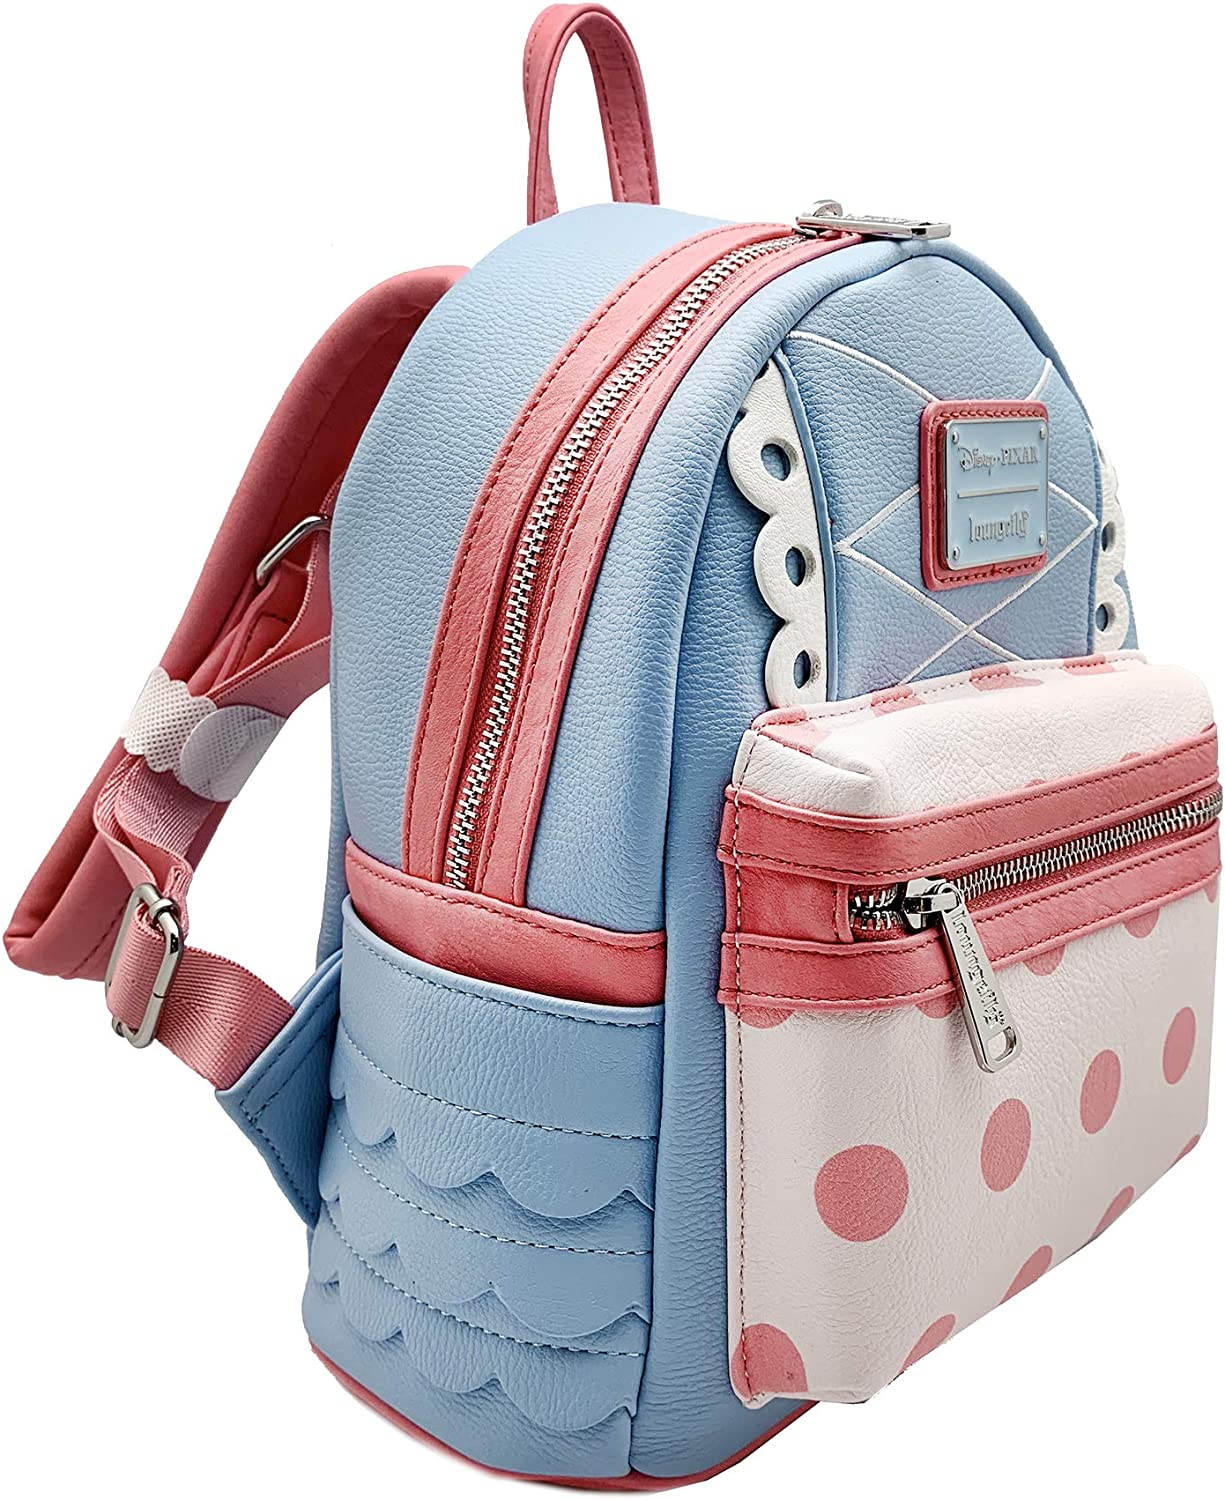 Loungefly x Disney Pixar Toy Story 4 Bo Peep Faux-Leather Mini Backpack